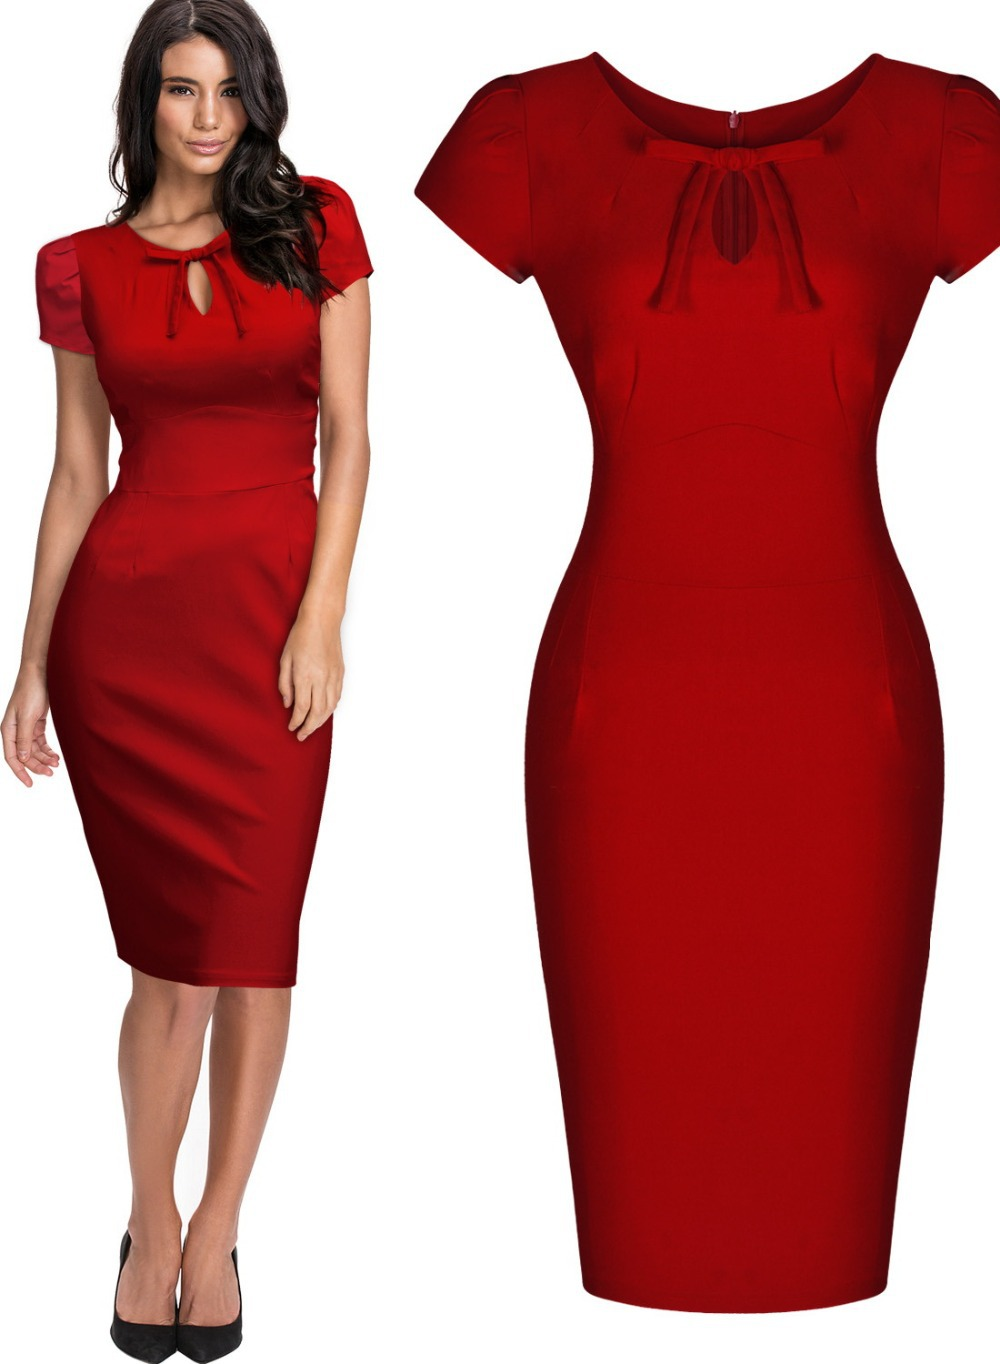 Red Wiggle Dress Cocktail Dresses 2016